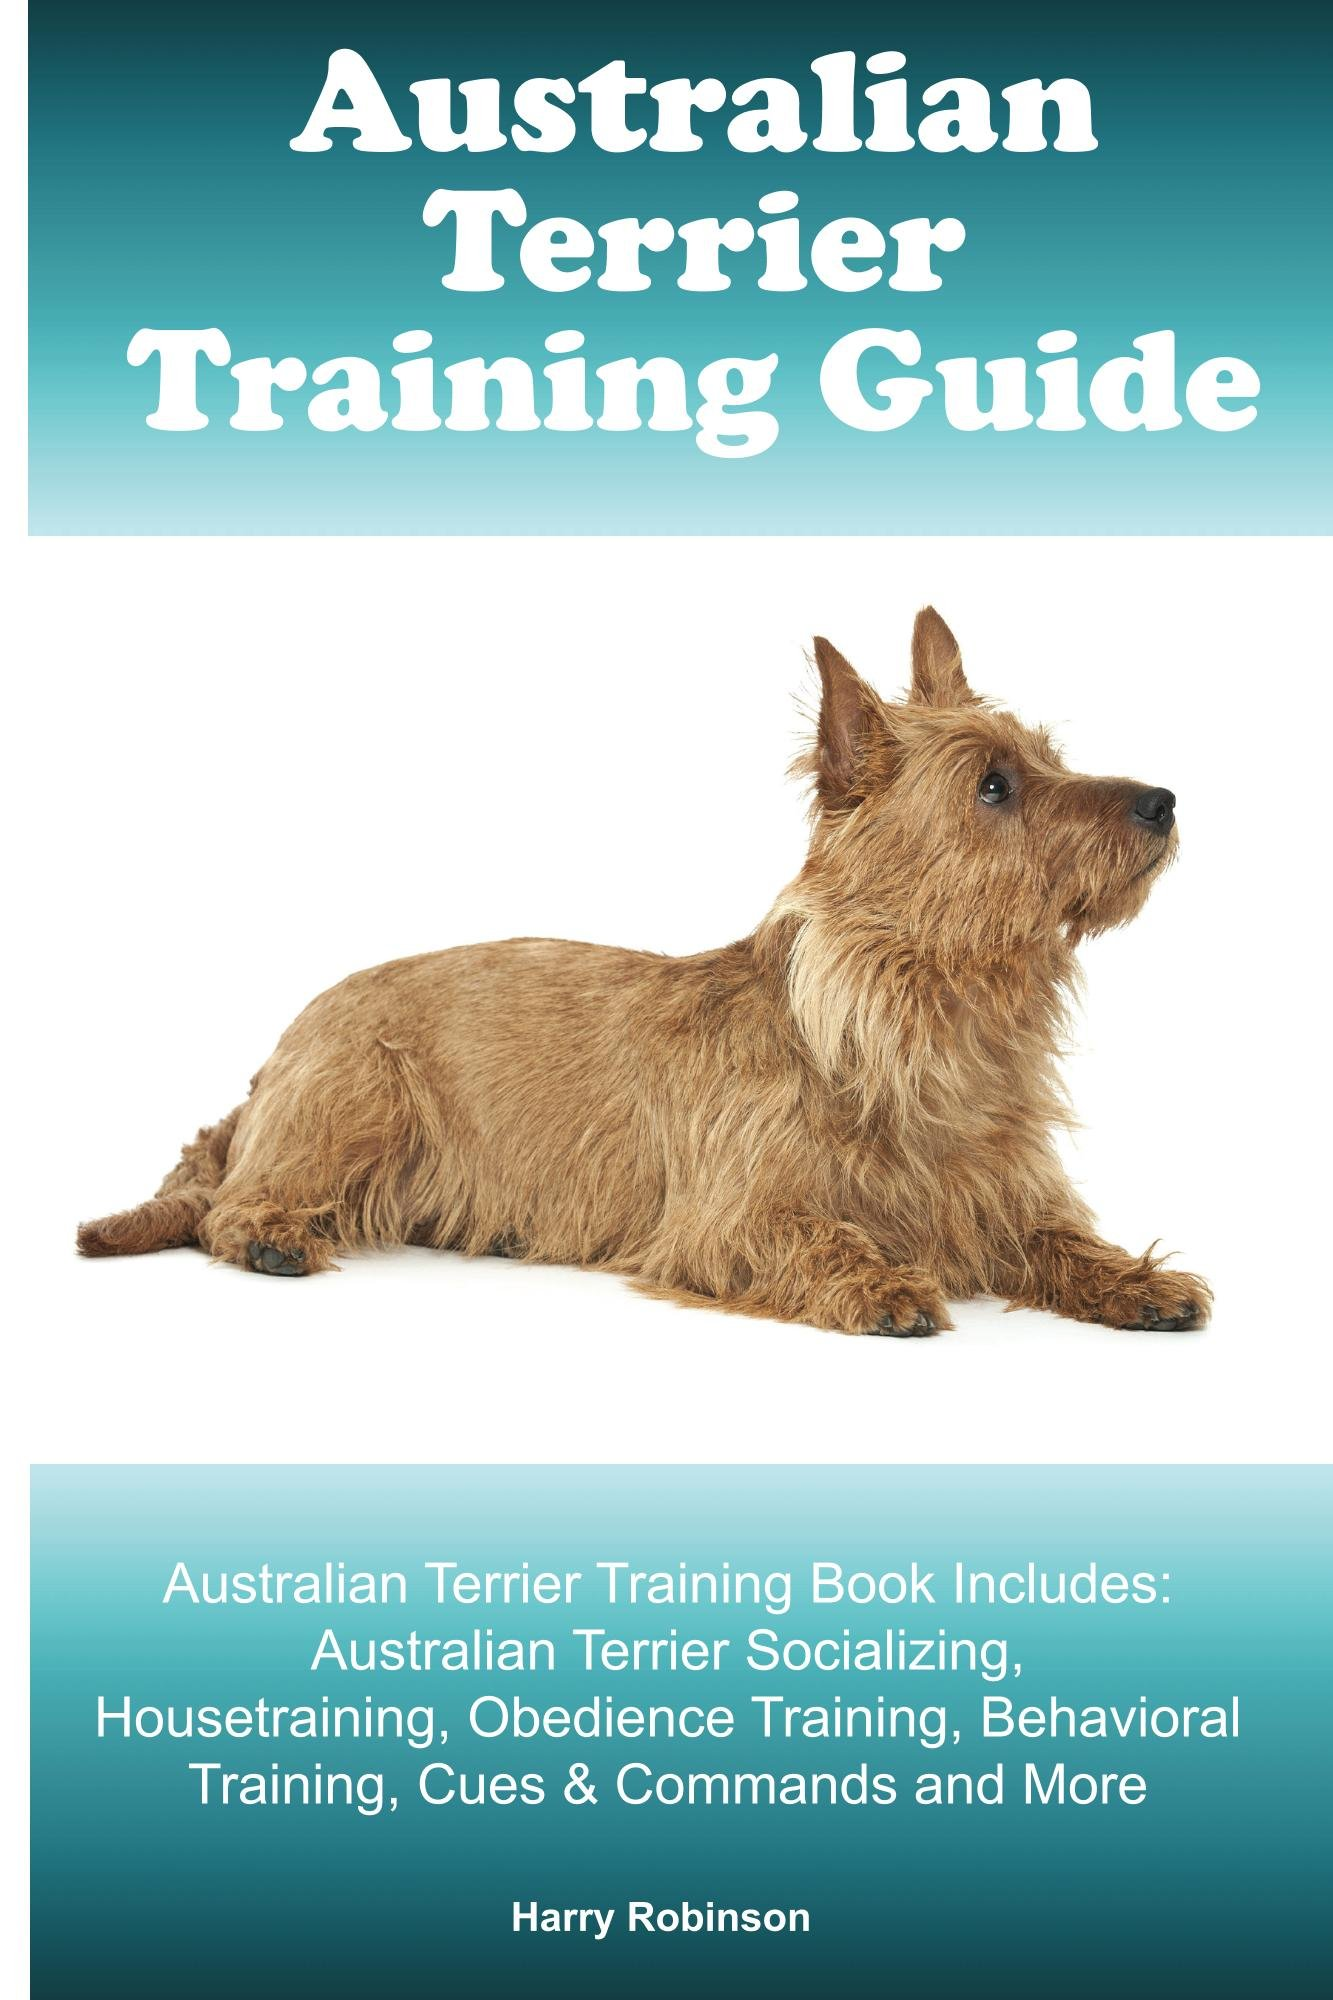 Australian Terrier Training Guide. Australian Terrier Training Book Includes: Australian Terrier Socializing, Housetraining, Obedience Training, Behavioral Training, Cues & Commands and More